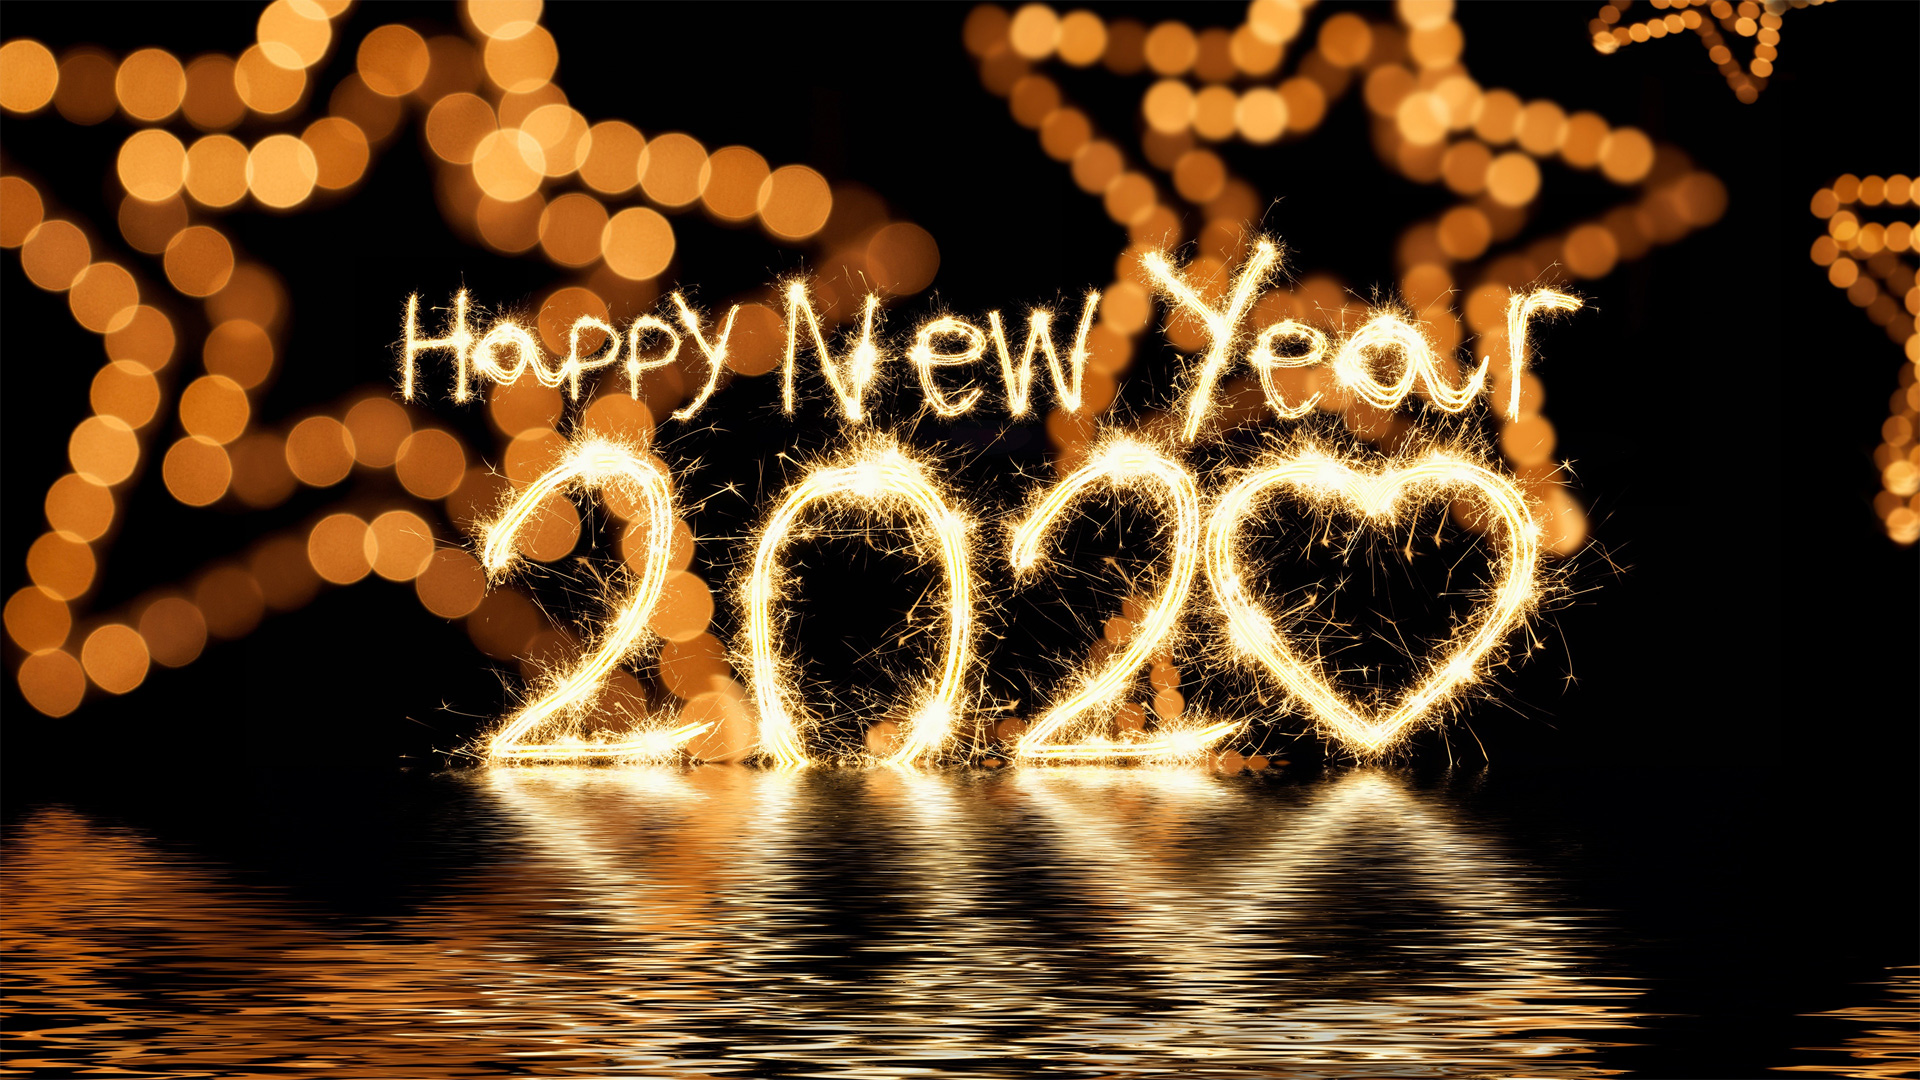 Happy New Year Images 2020 Wallpaper